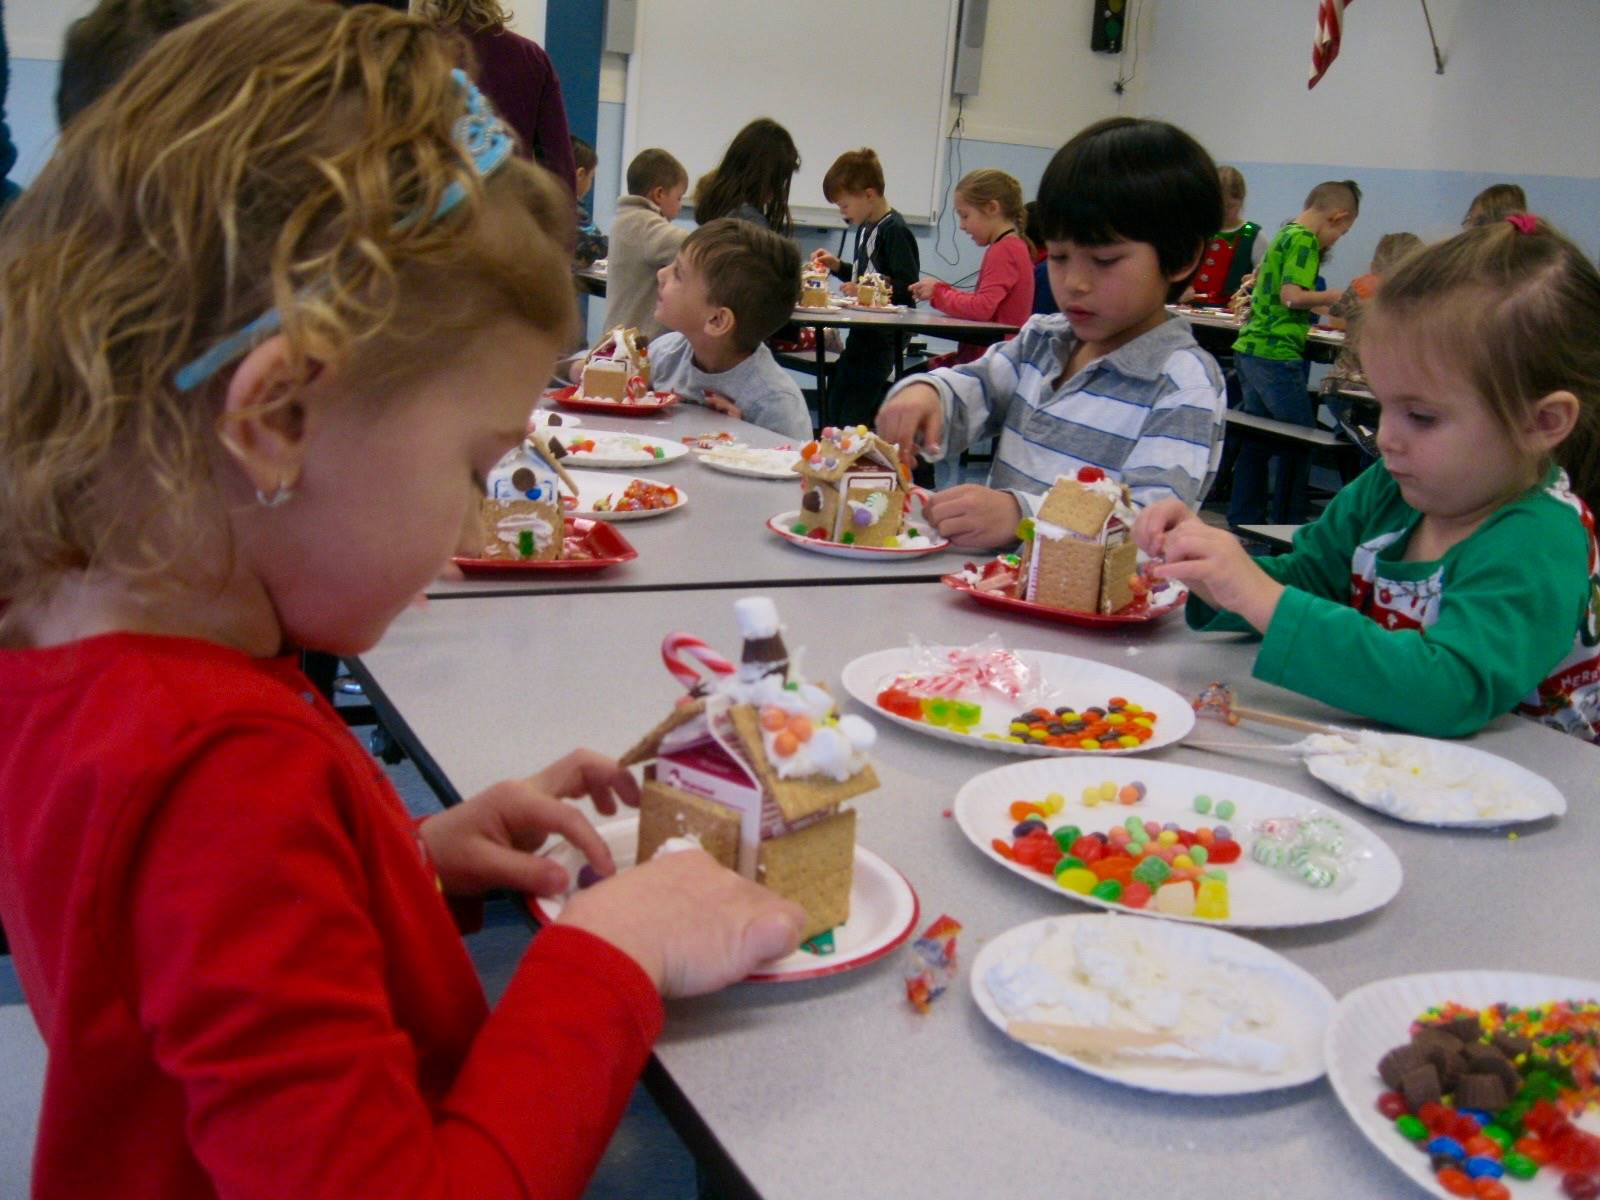 3 students show gingerbread houses.